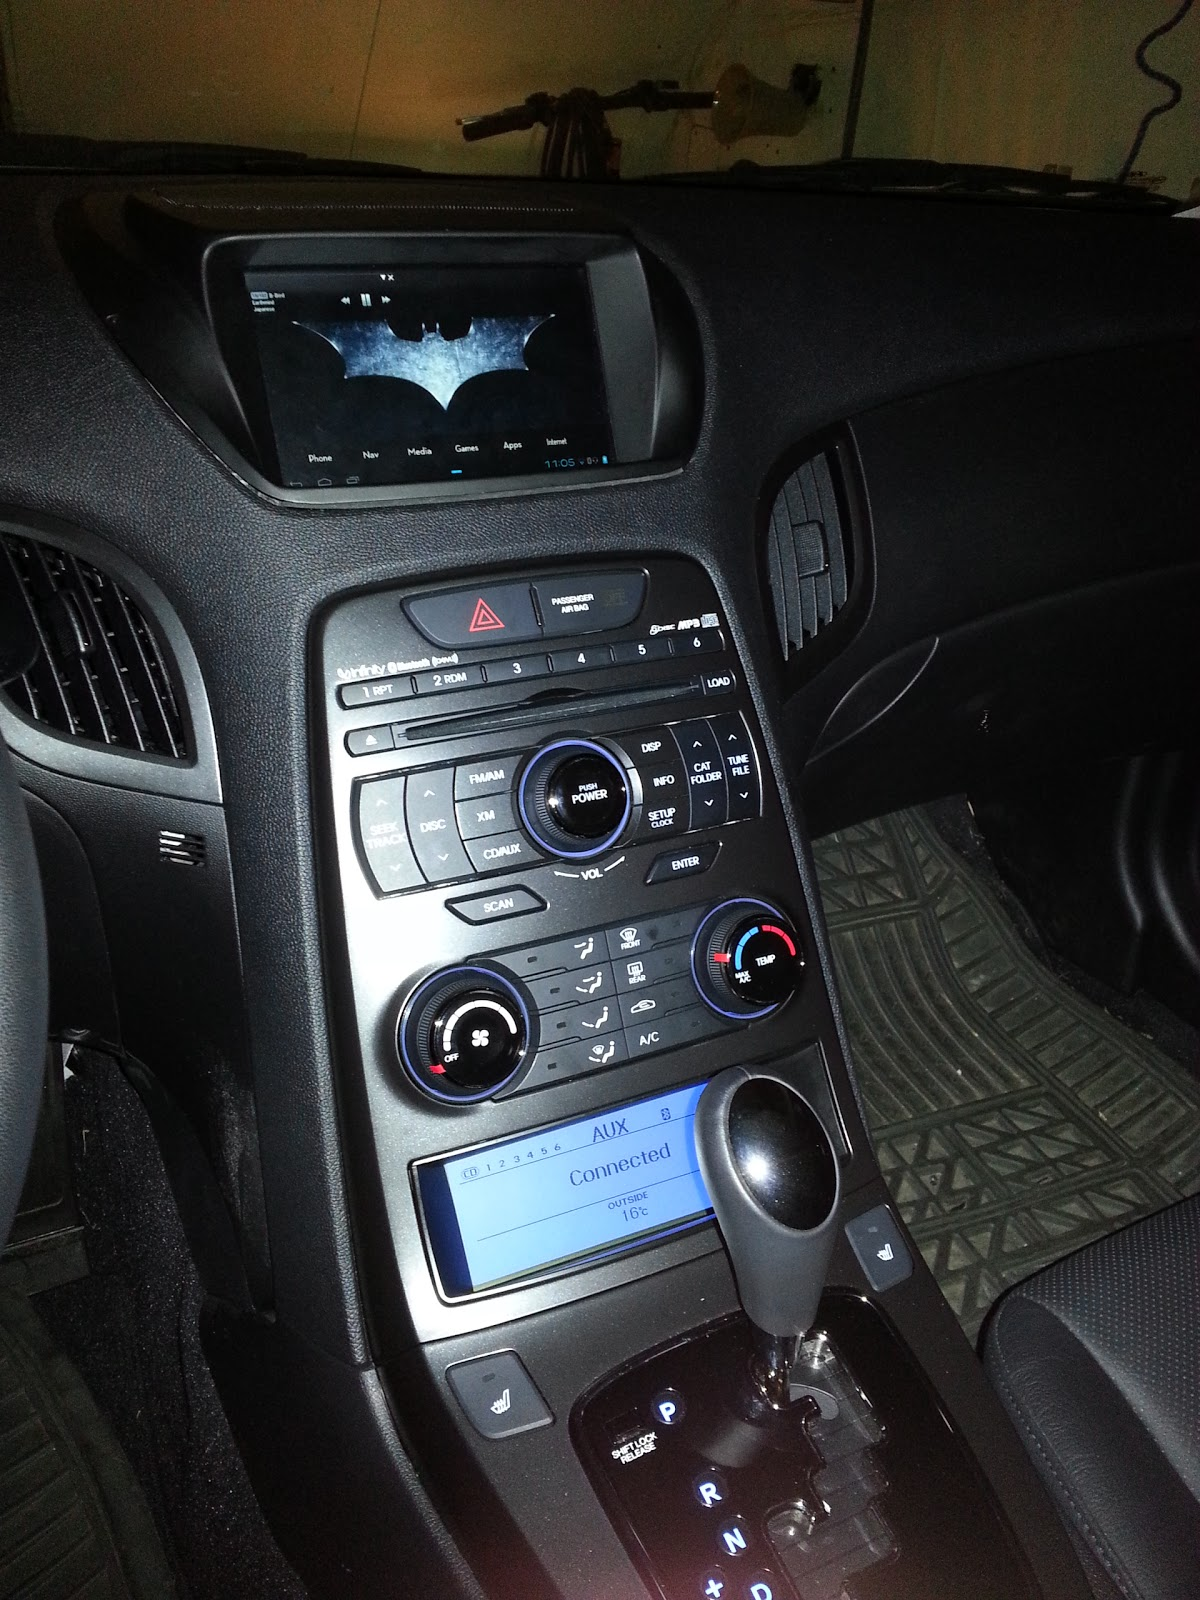 While the 2.0T version of the Genesis Coupe doesn't have built-in Nav,  there was a mount for a 7 inch GPS or tablet designed to fit on the dash  and make it ...